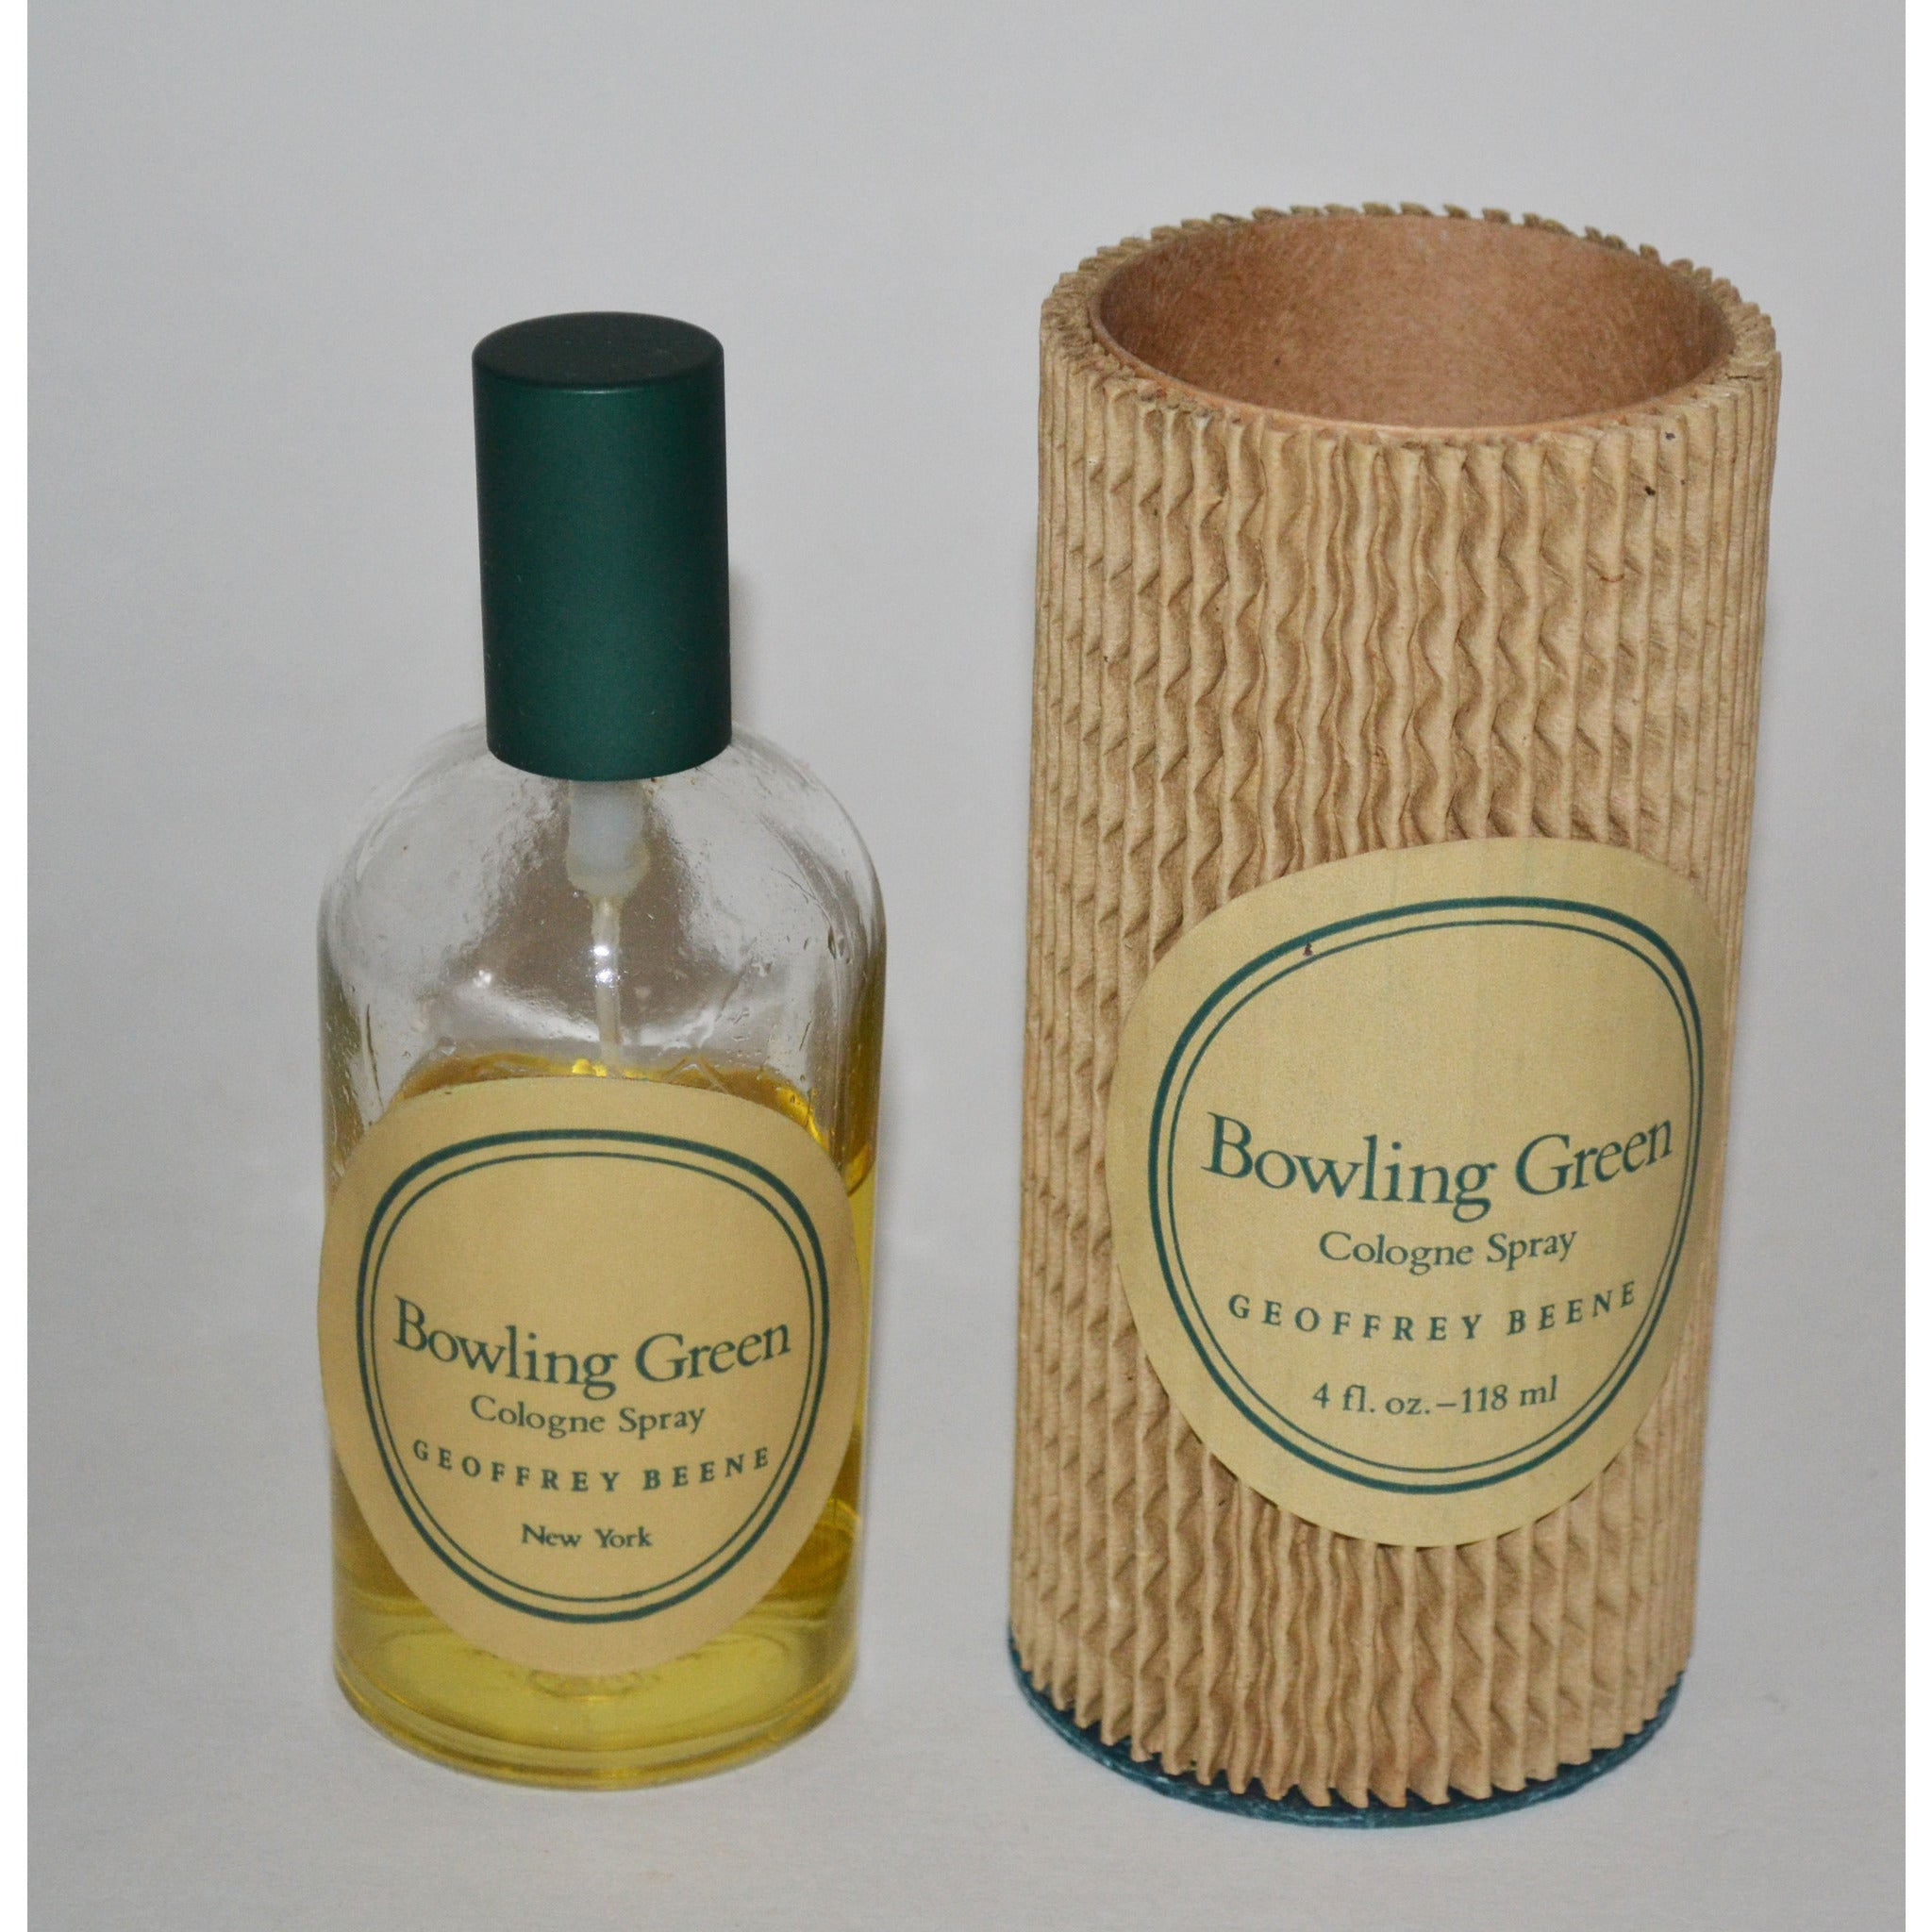 Vintage Bowling Green Cologne By Geoffrey Beene